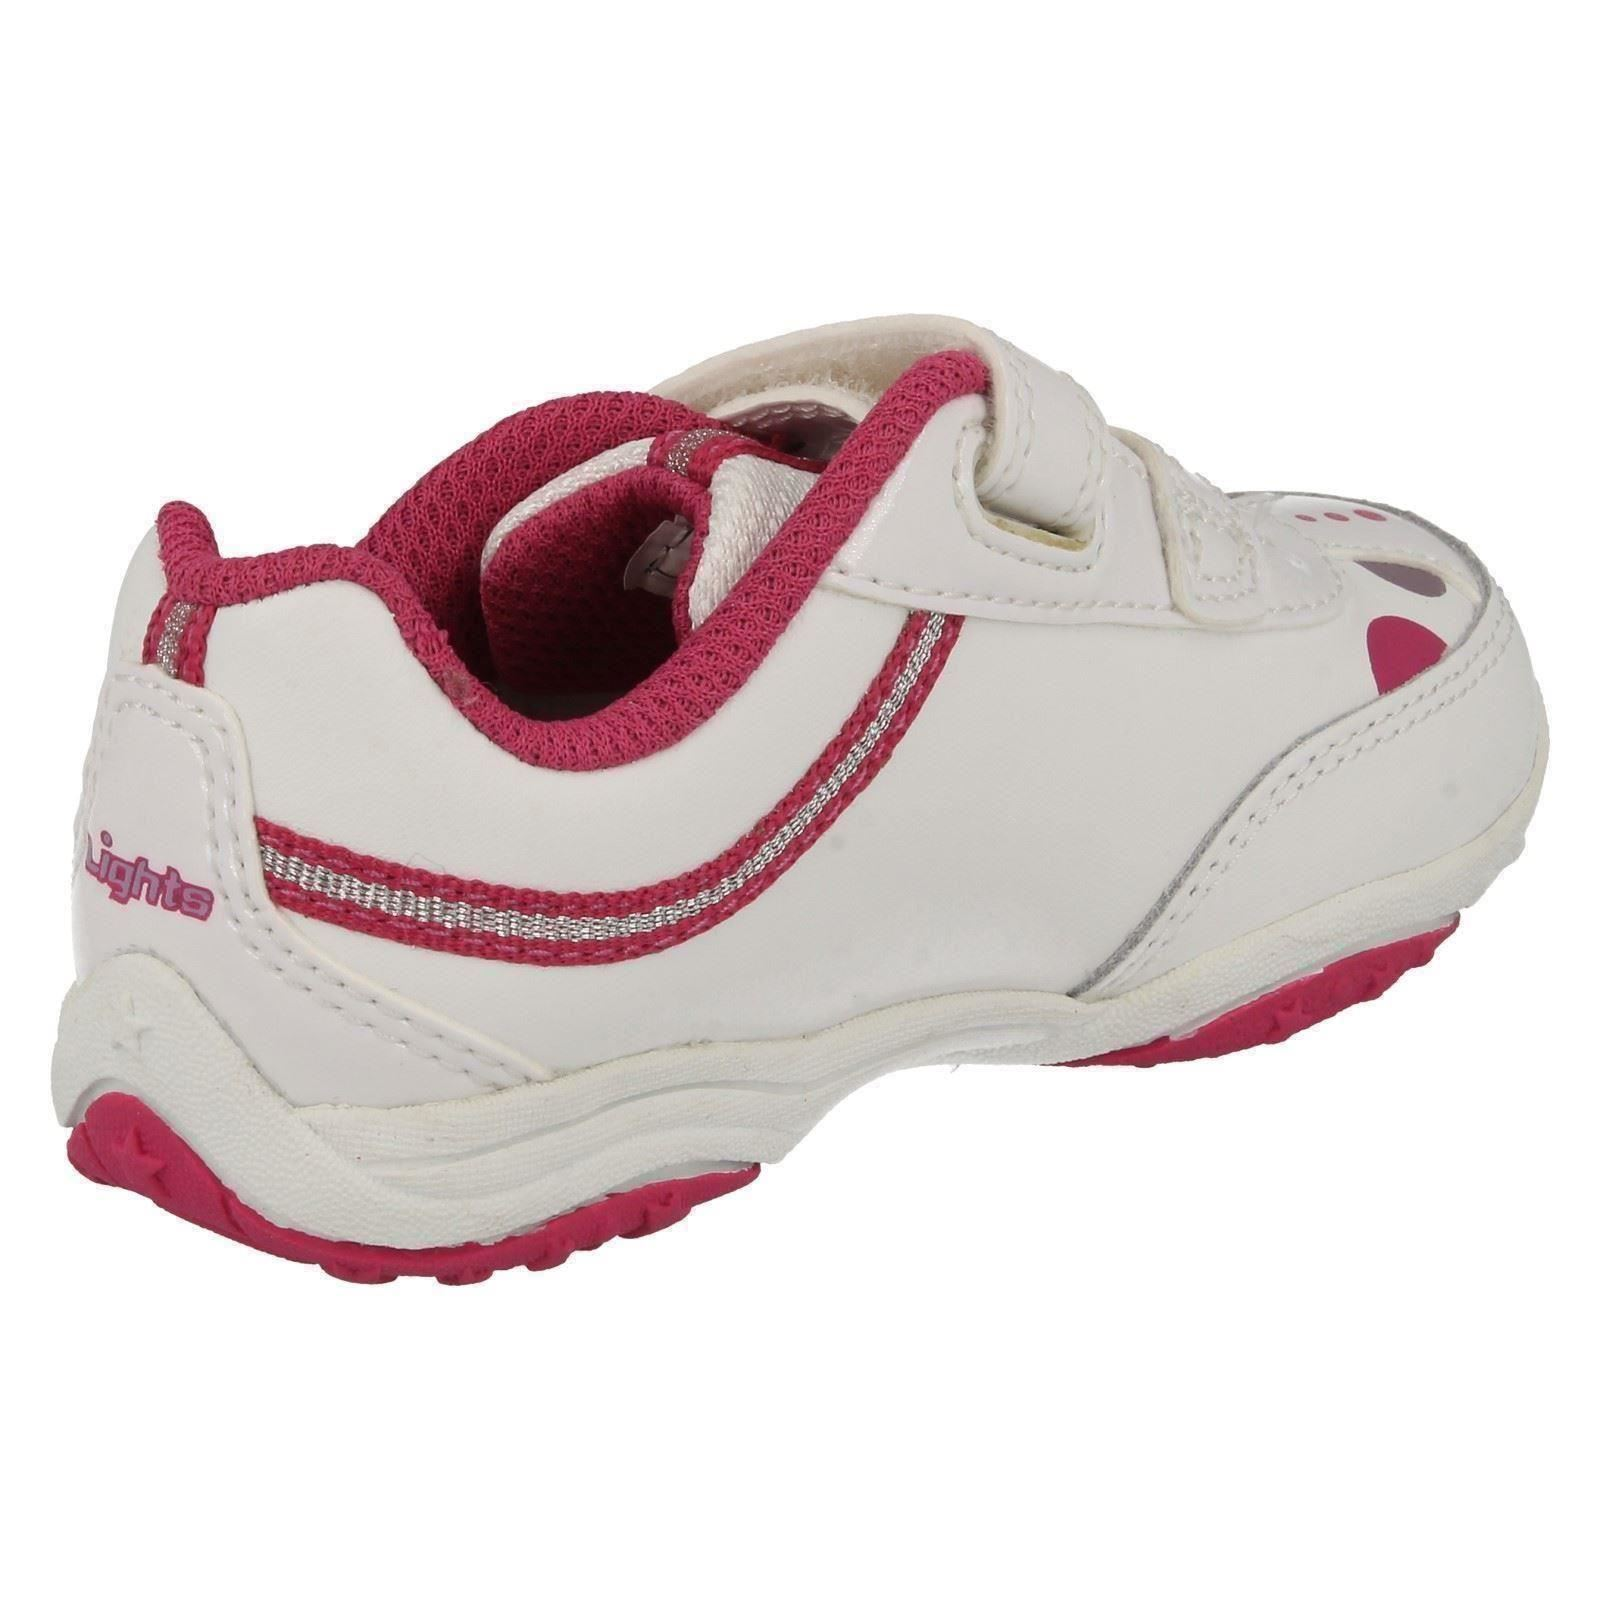 Clarks Girls Trainers - Giggle Run